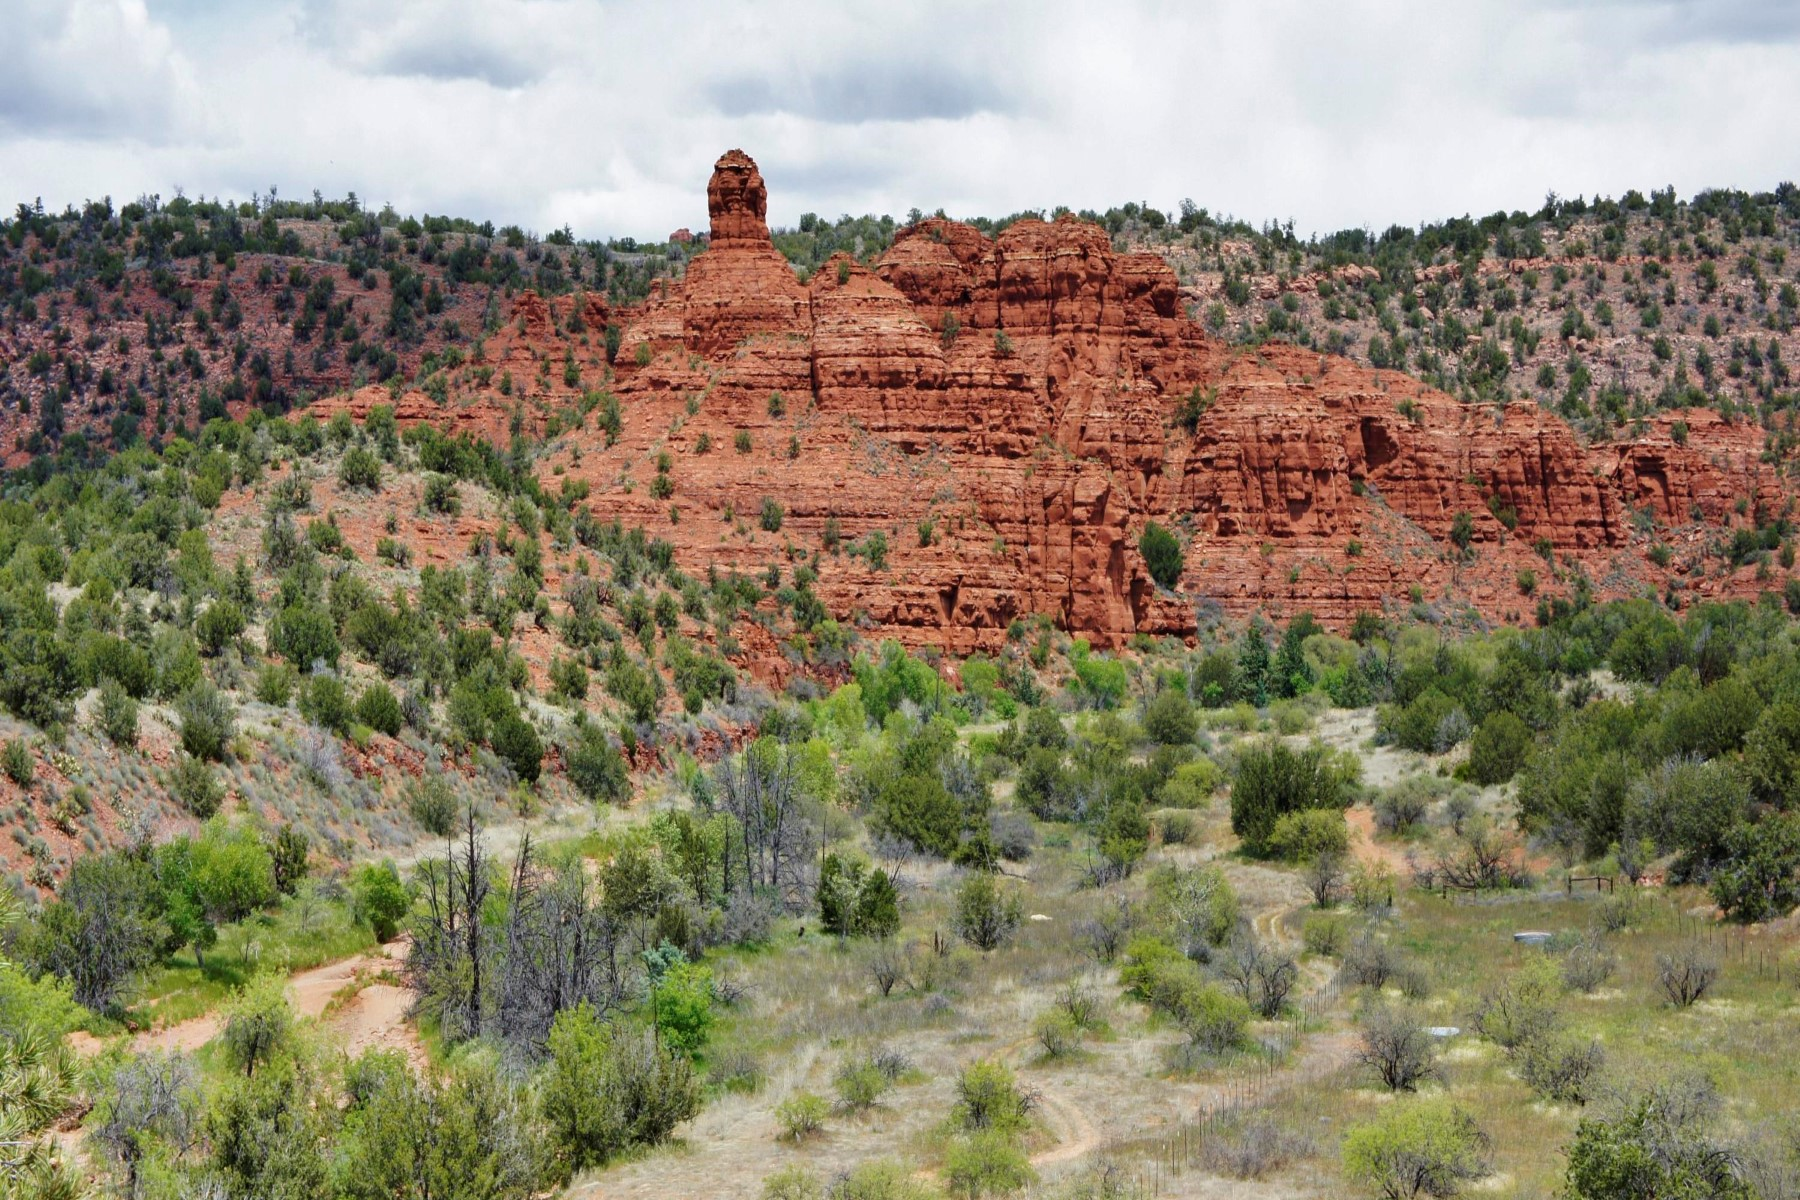 土地 為 出售 在 The multi-layered vistas from this picturesque home site span a secluded canyon. 520 Red Moon Drive Sedona, 亞利桑那州, 86336 美國